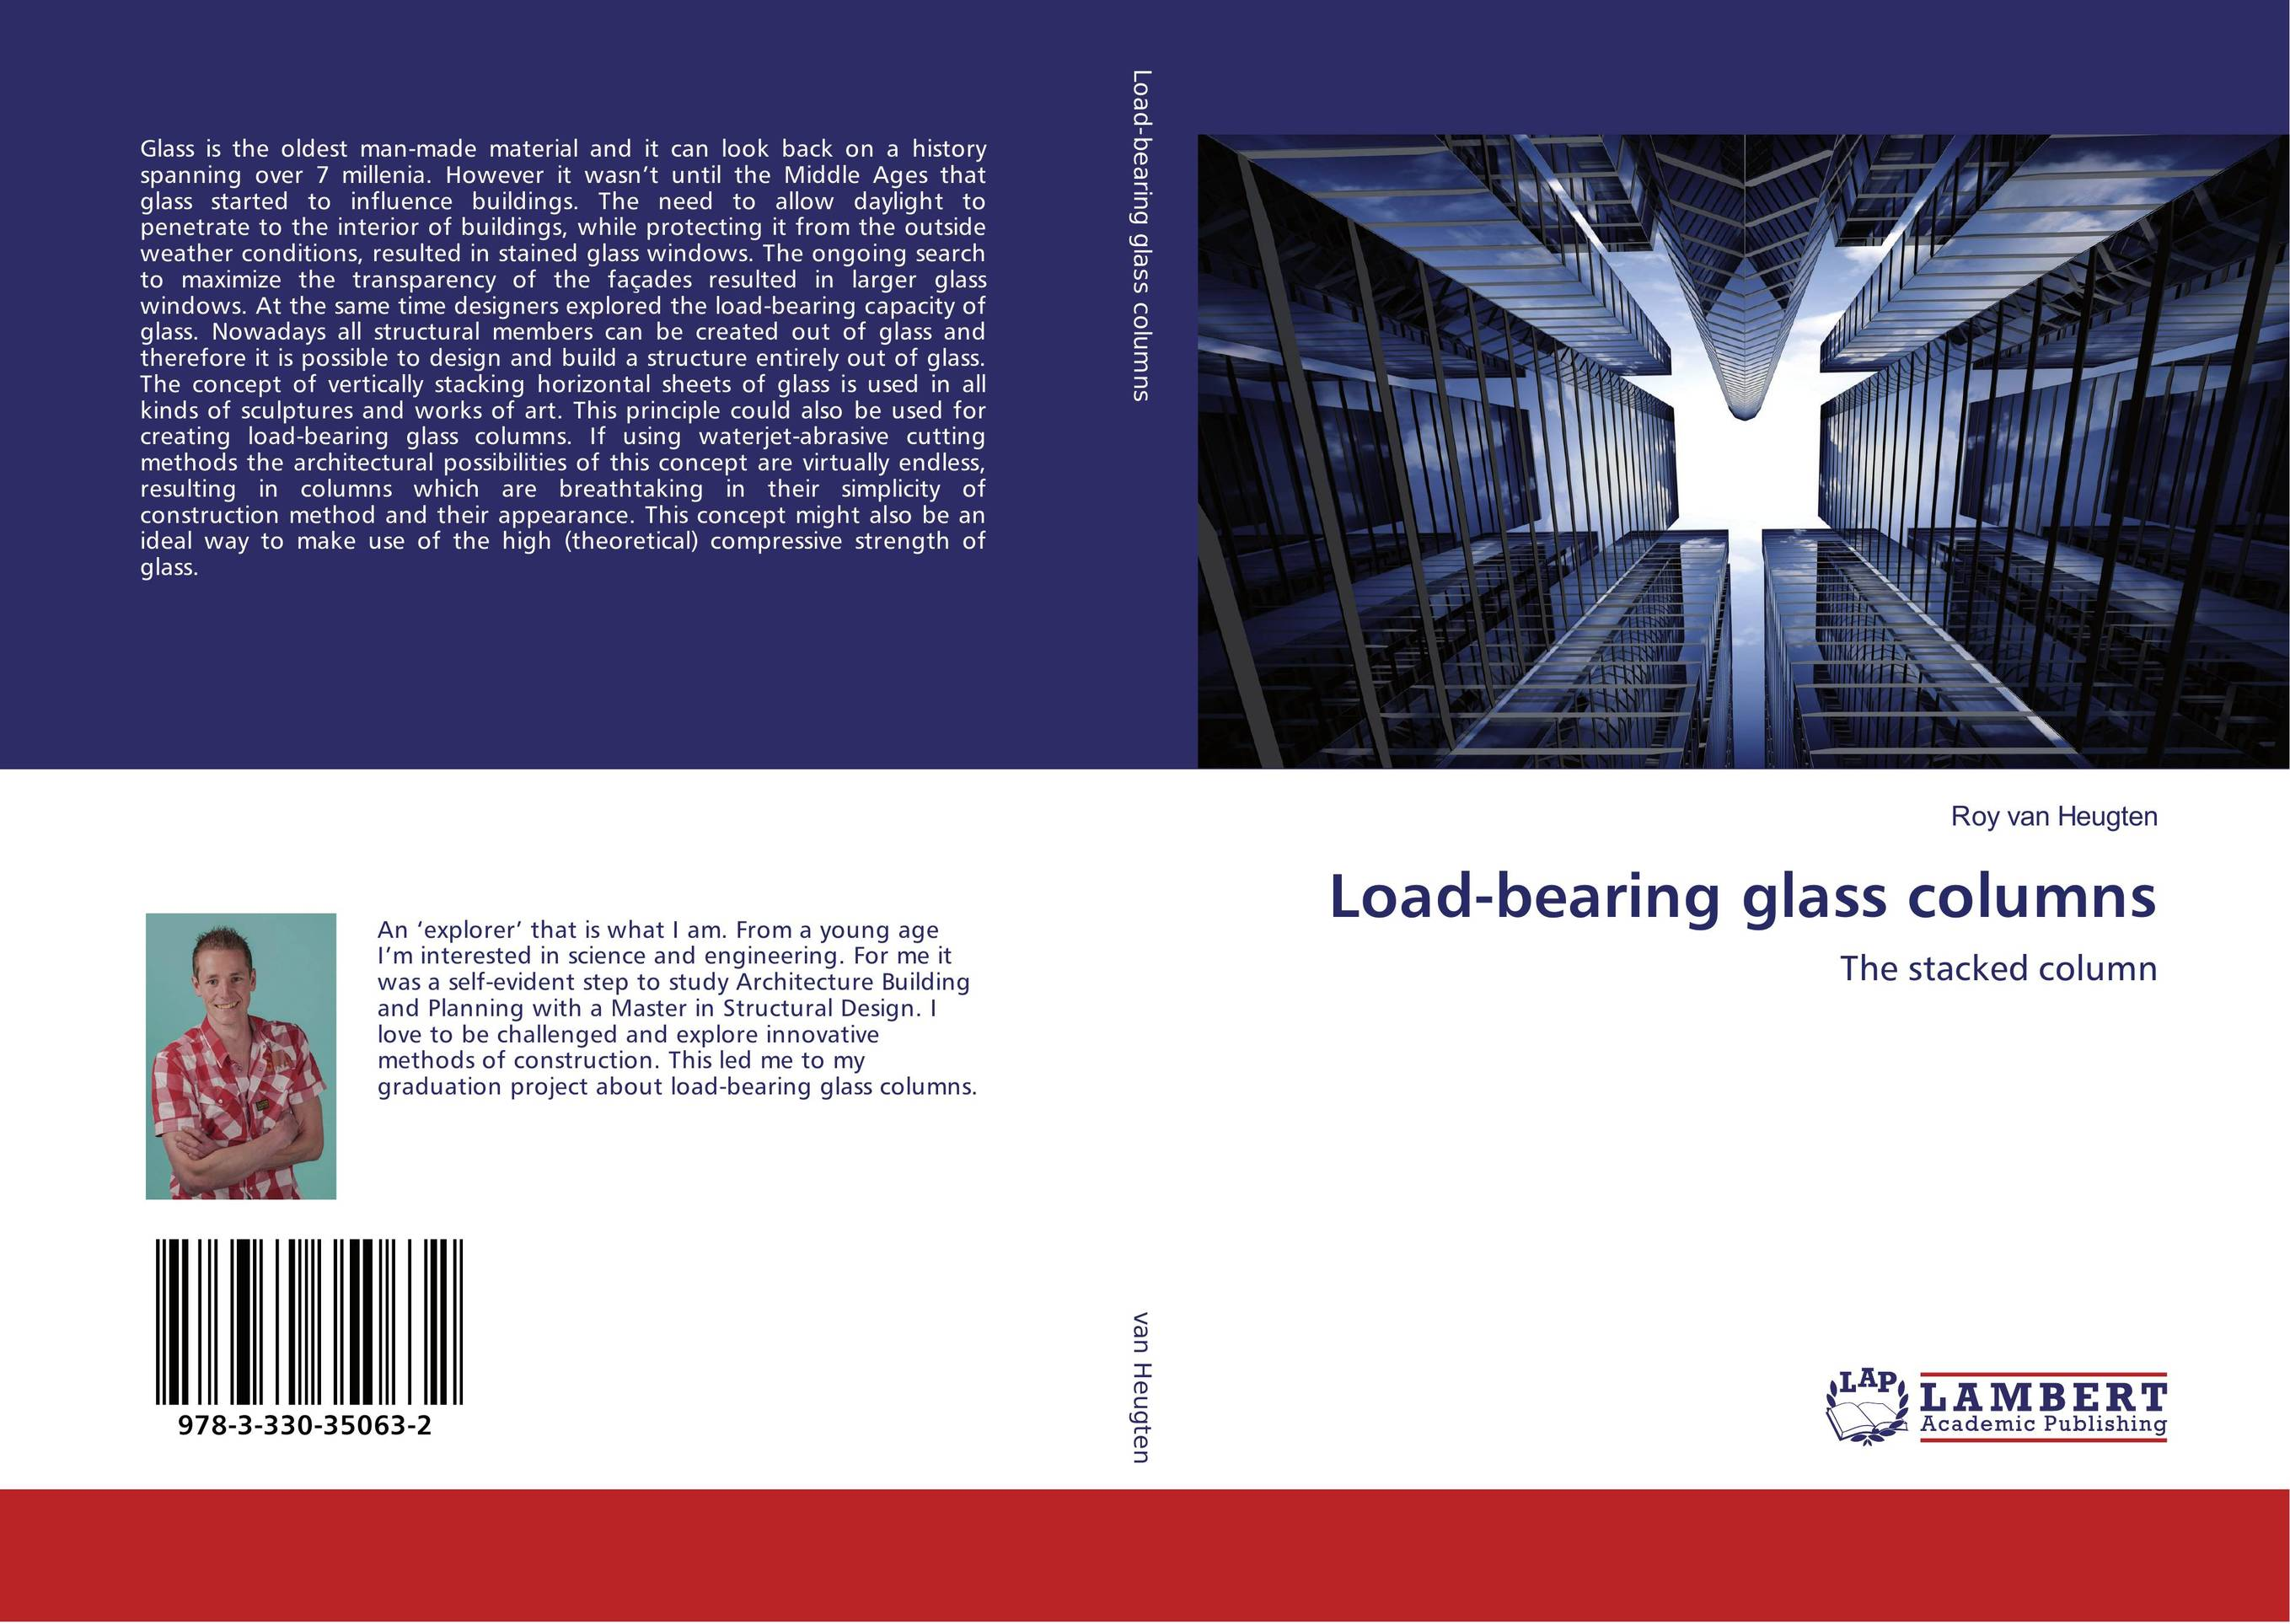 9783330350632 Loadbearing glass columns Roy van Heugten